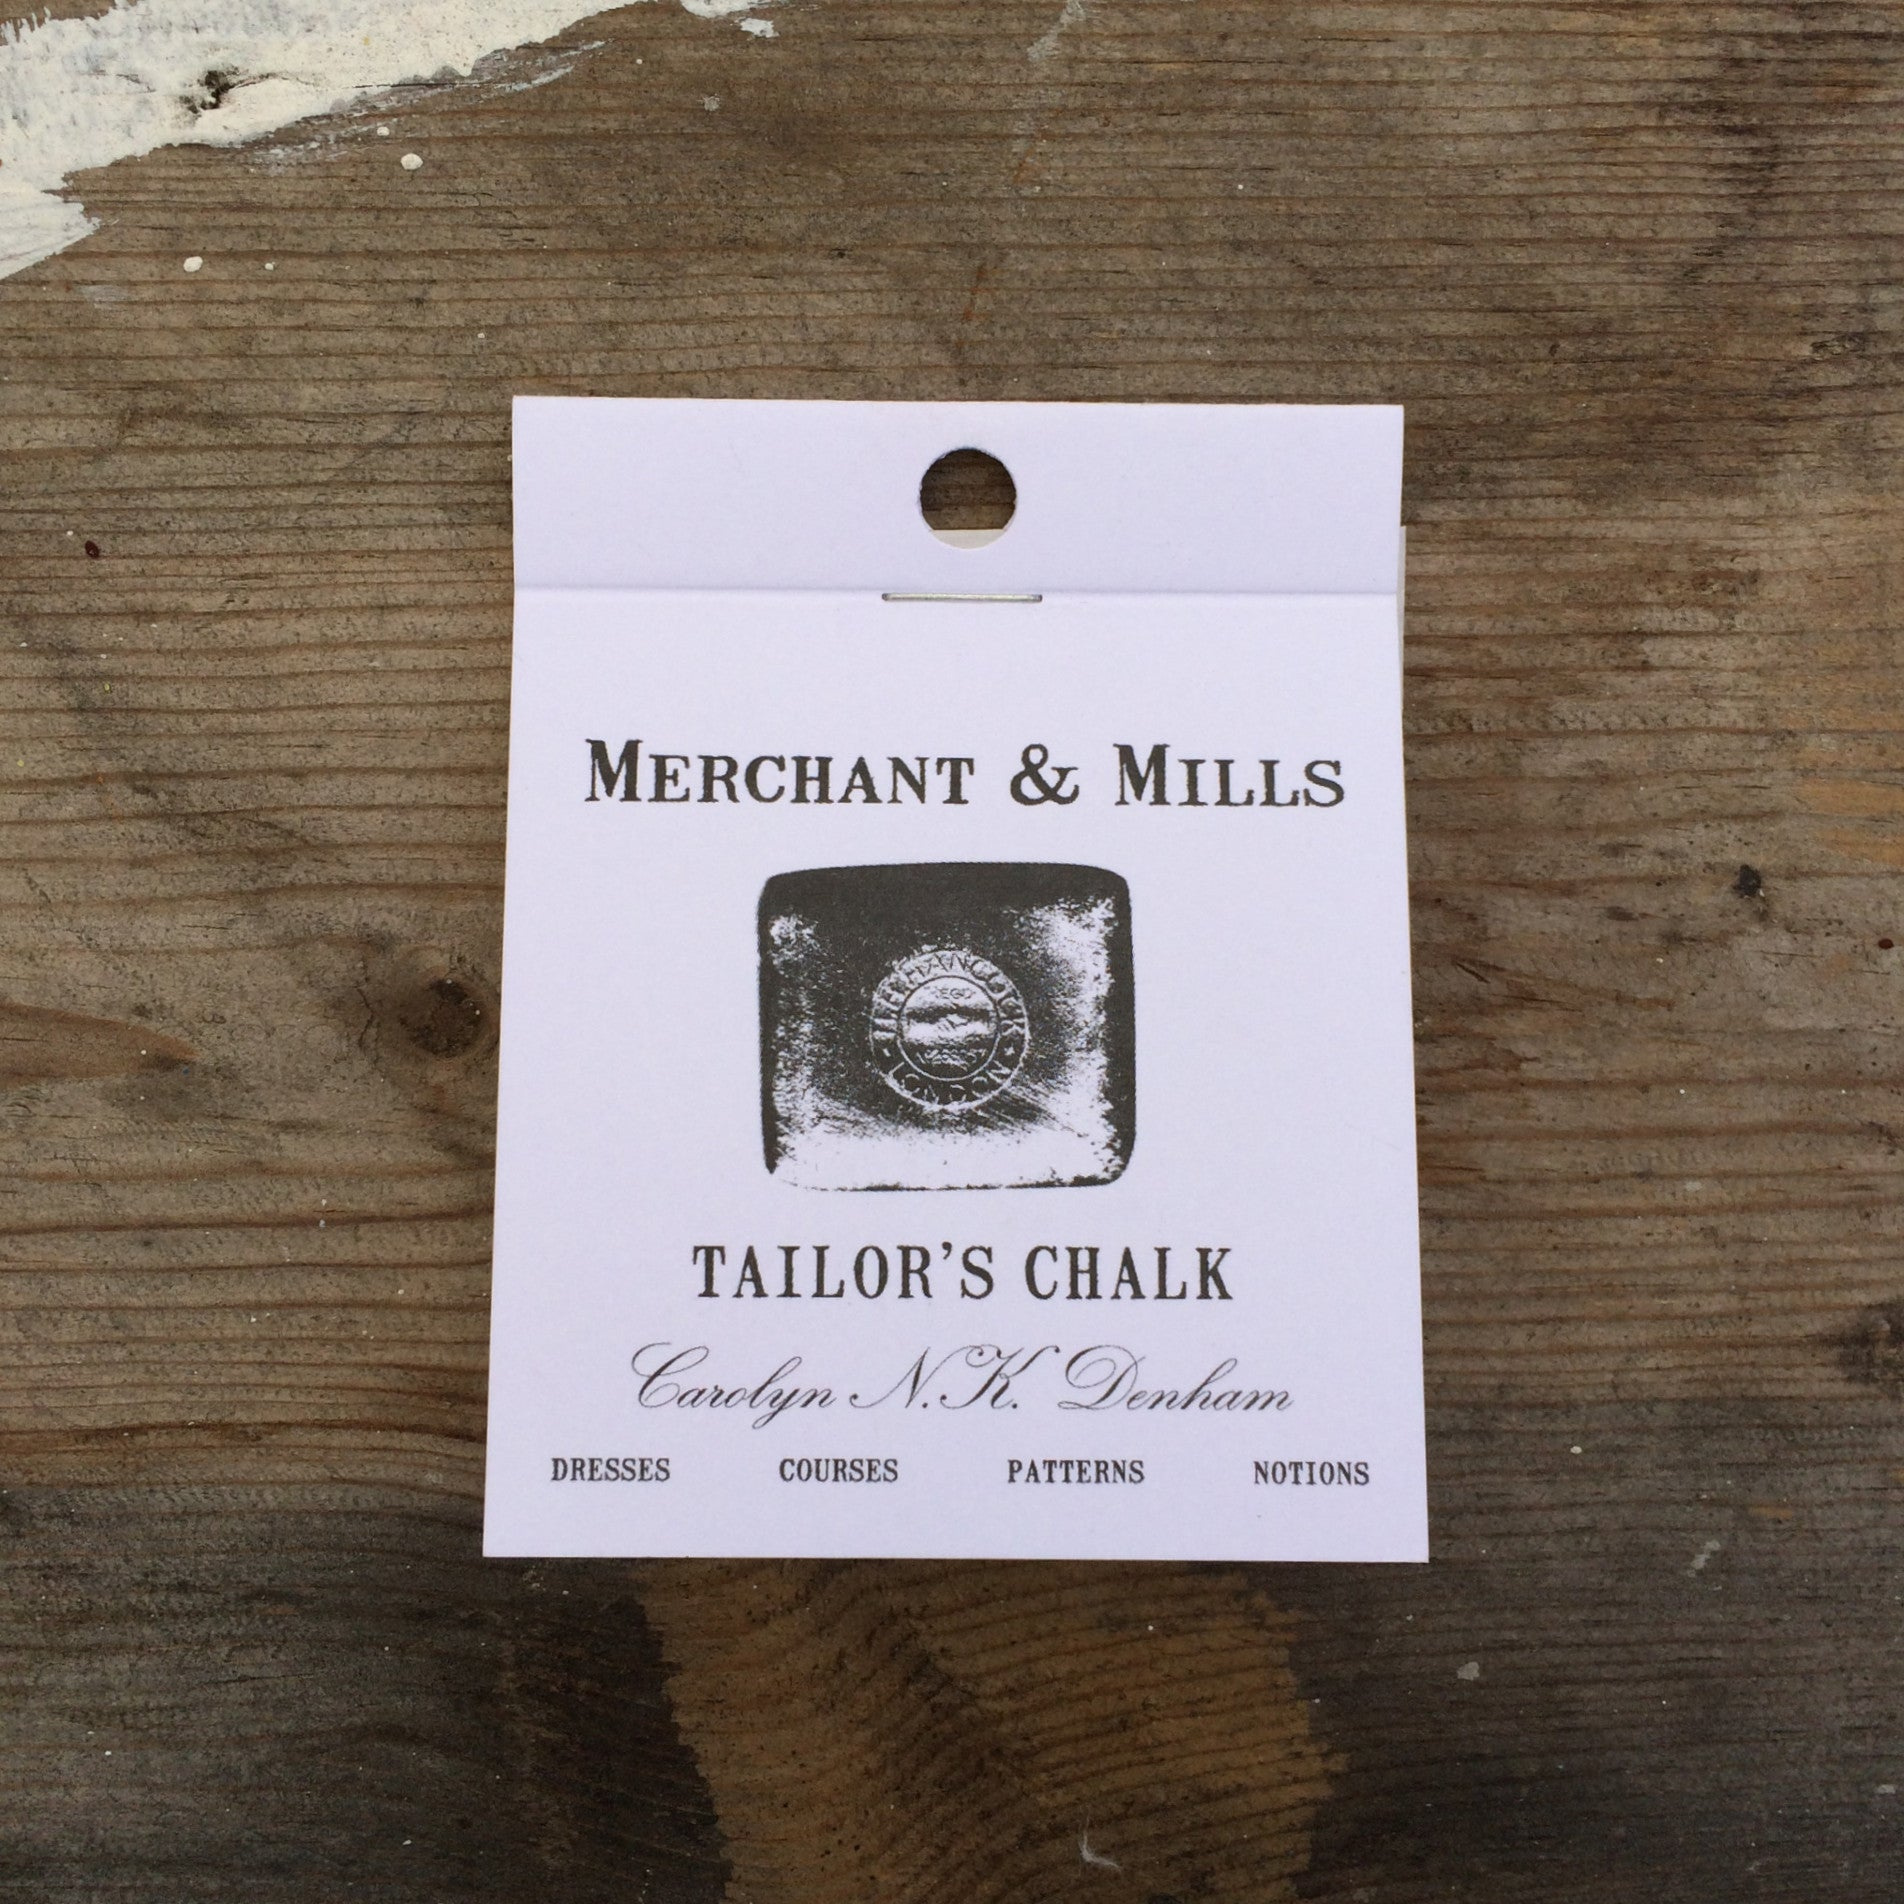 Merchant & Mills Tailor's Chalk